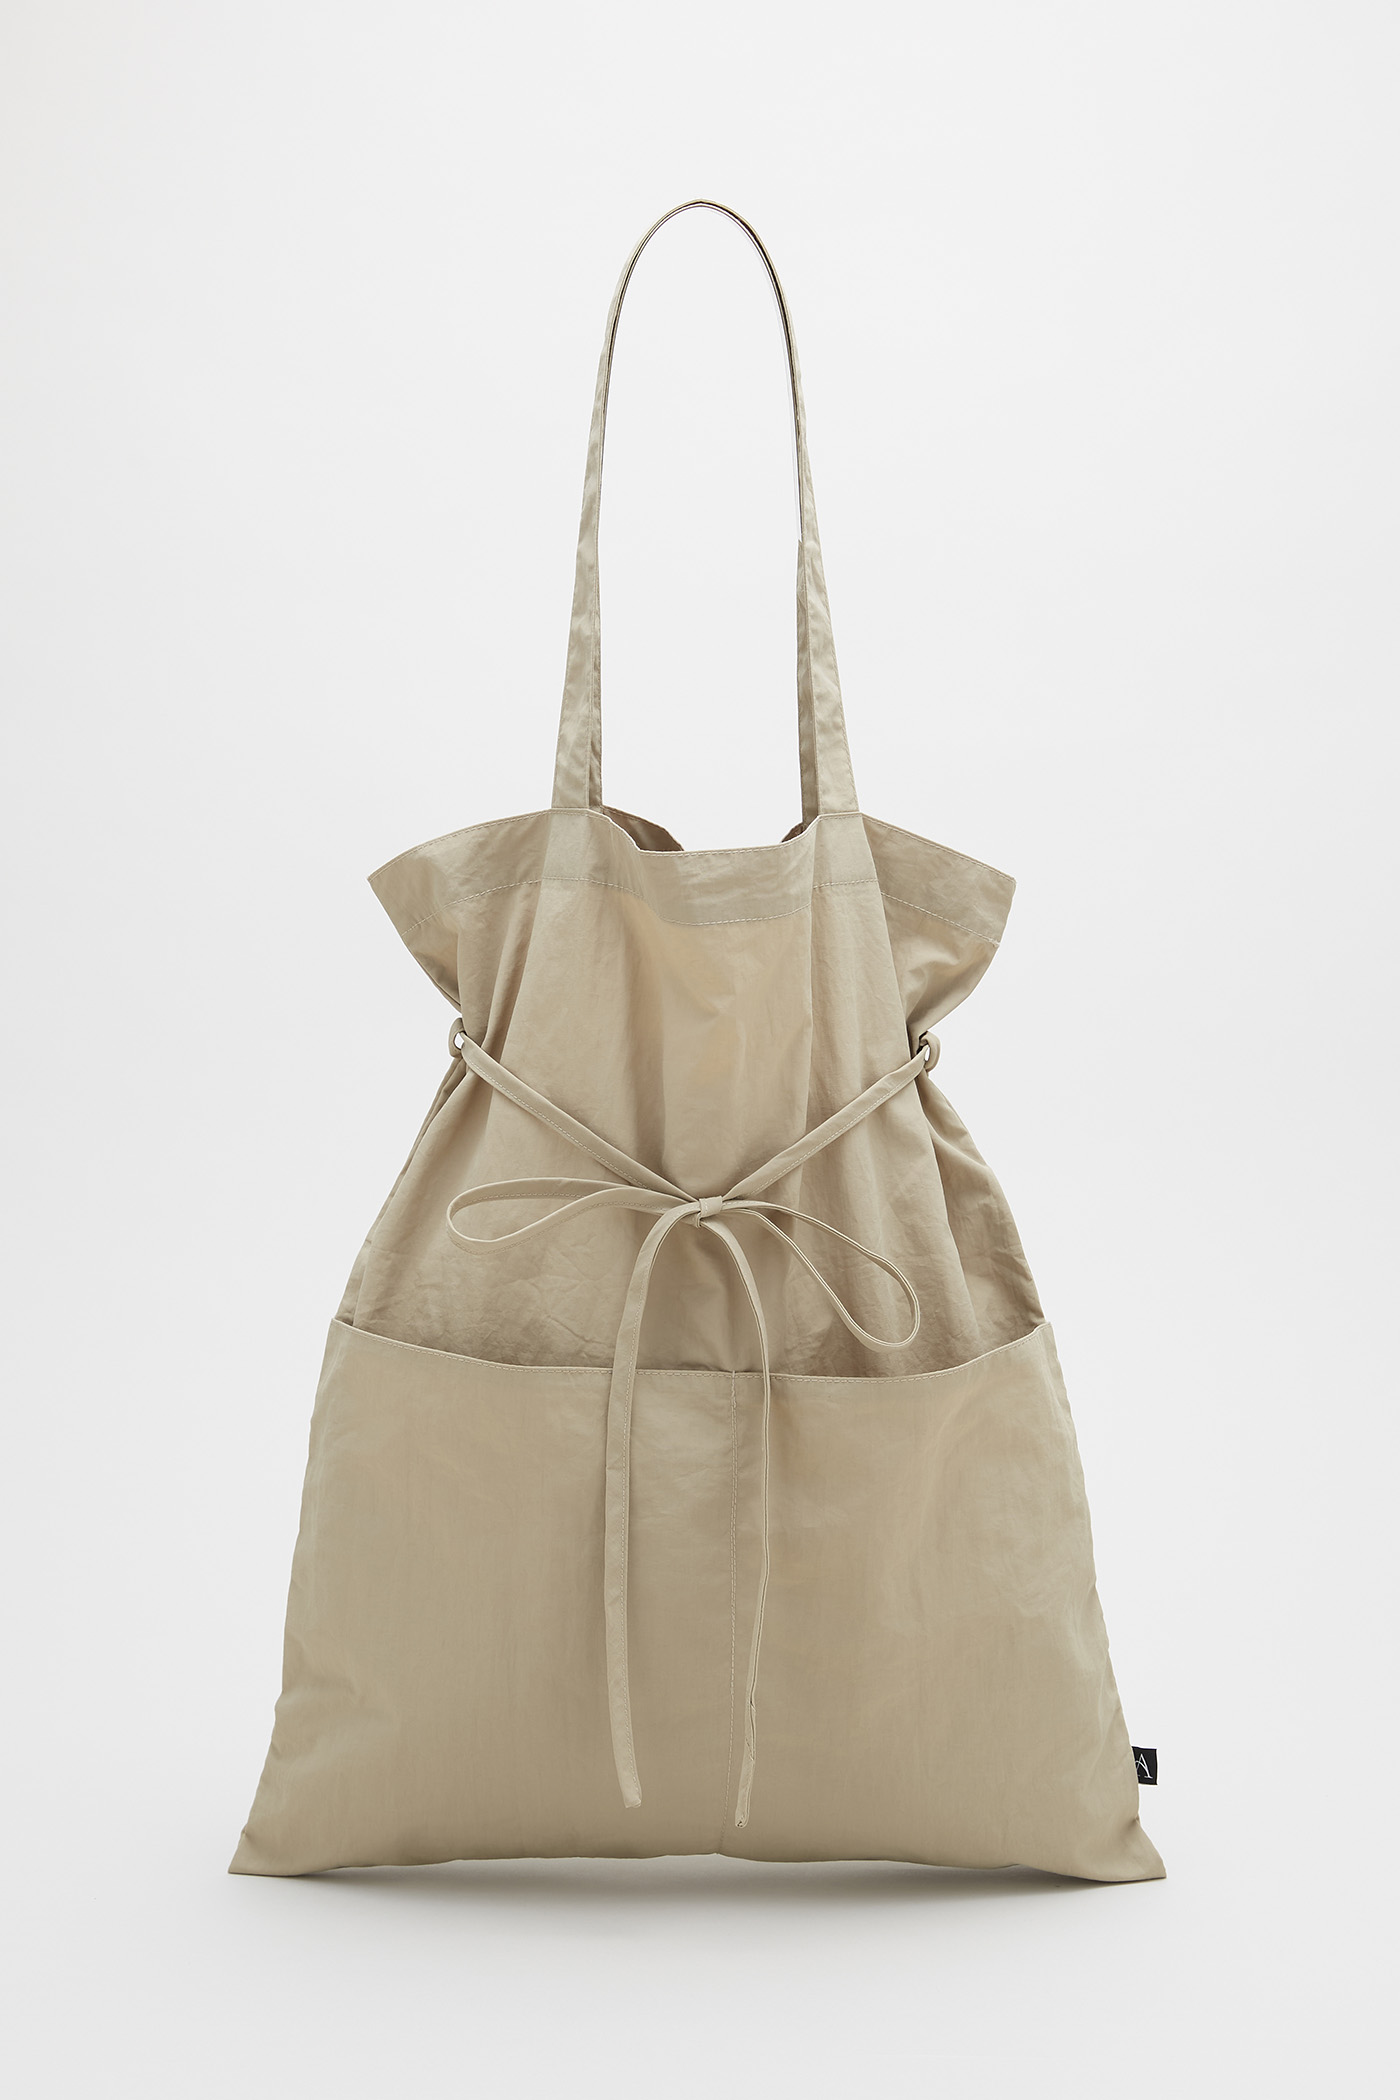 The Pocket Tote